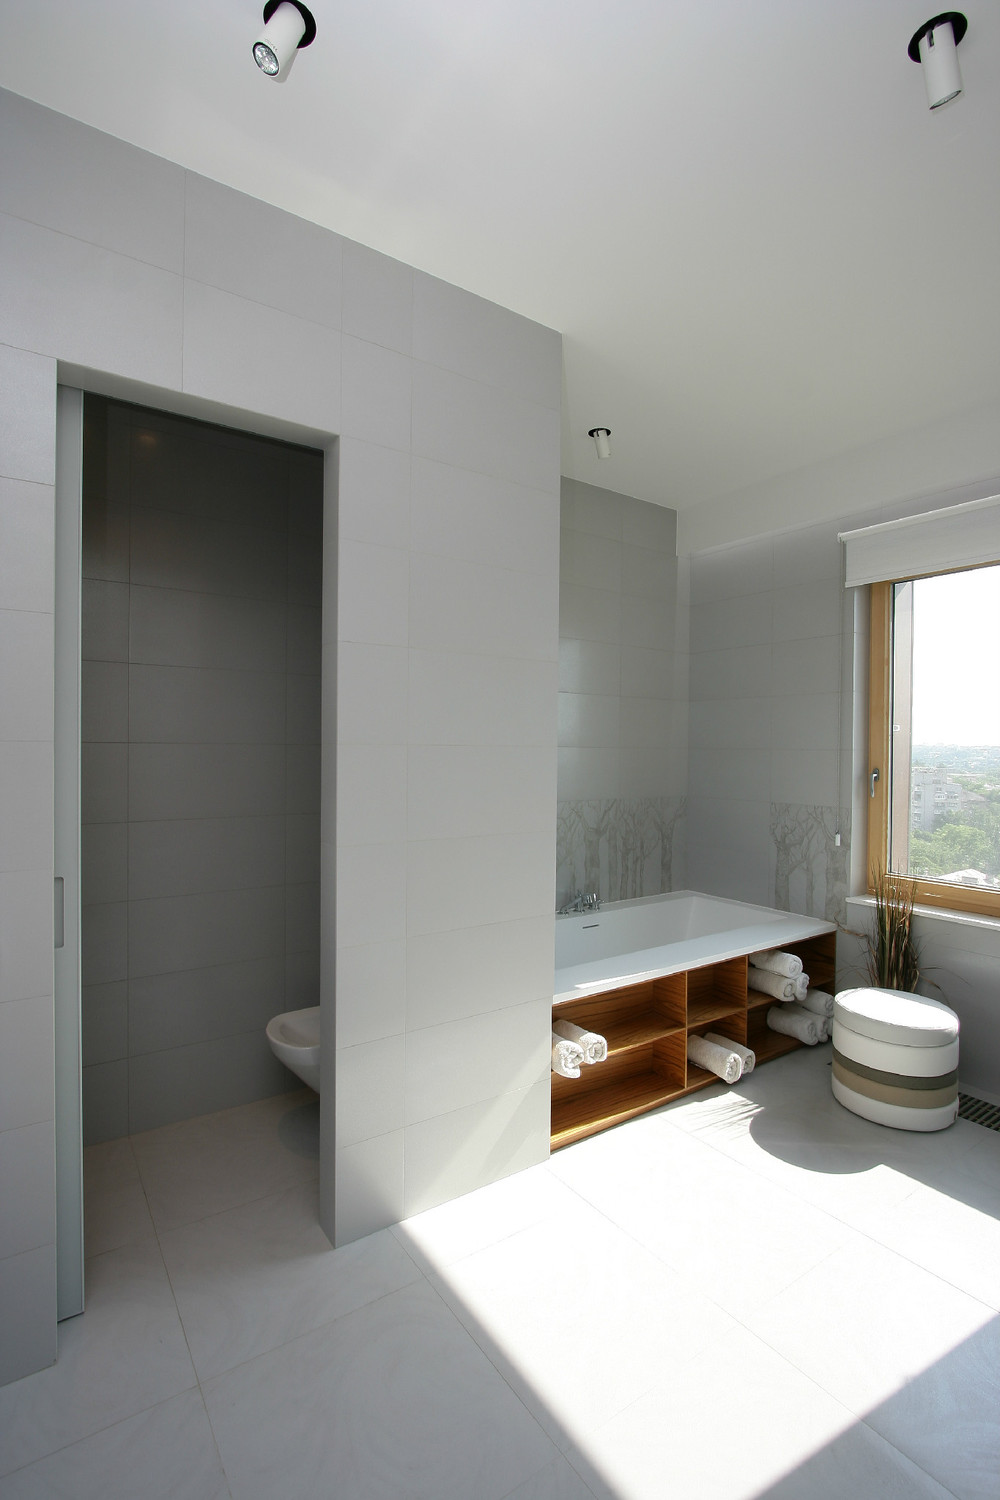 Under Bath Storage - Glowing interior designs